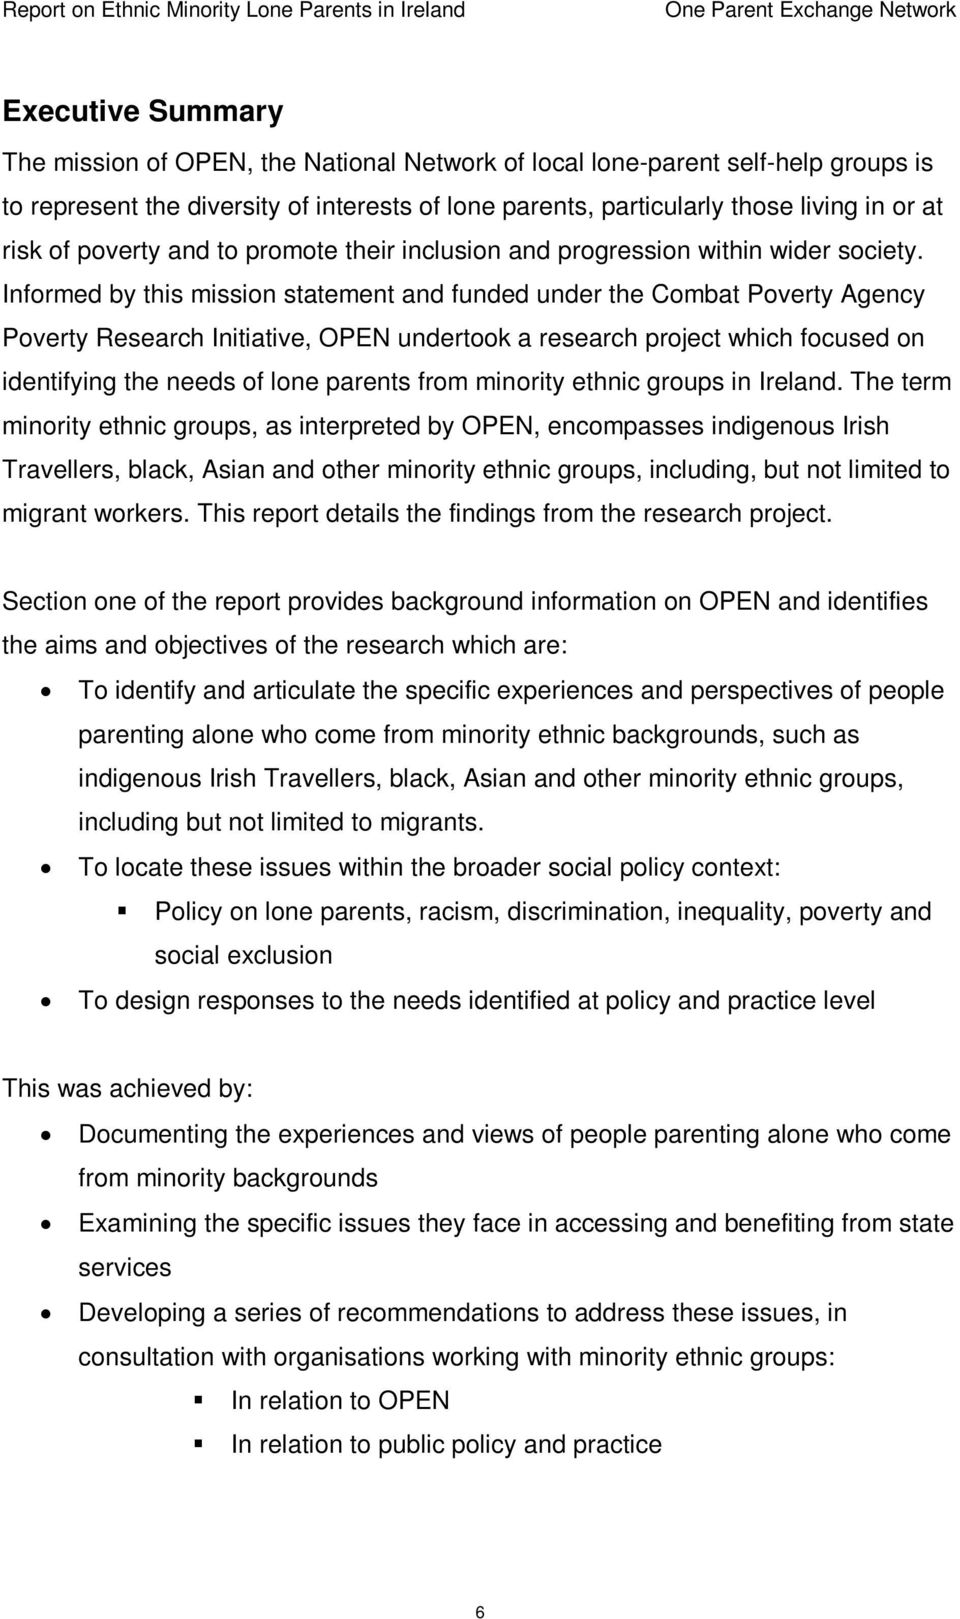 Informed by this mission statement and funded under the Combat Poverty Agency Poverty Research Initiative, OPEN undertook a research project which focused on identifying the needs of lone parents